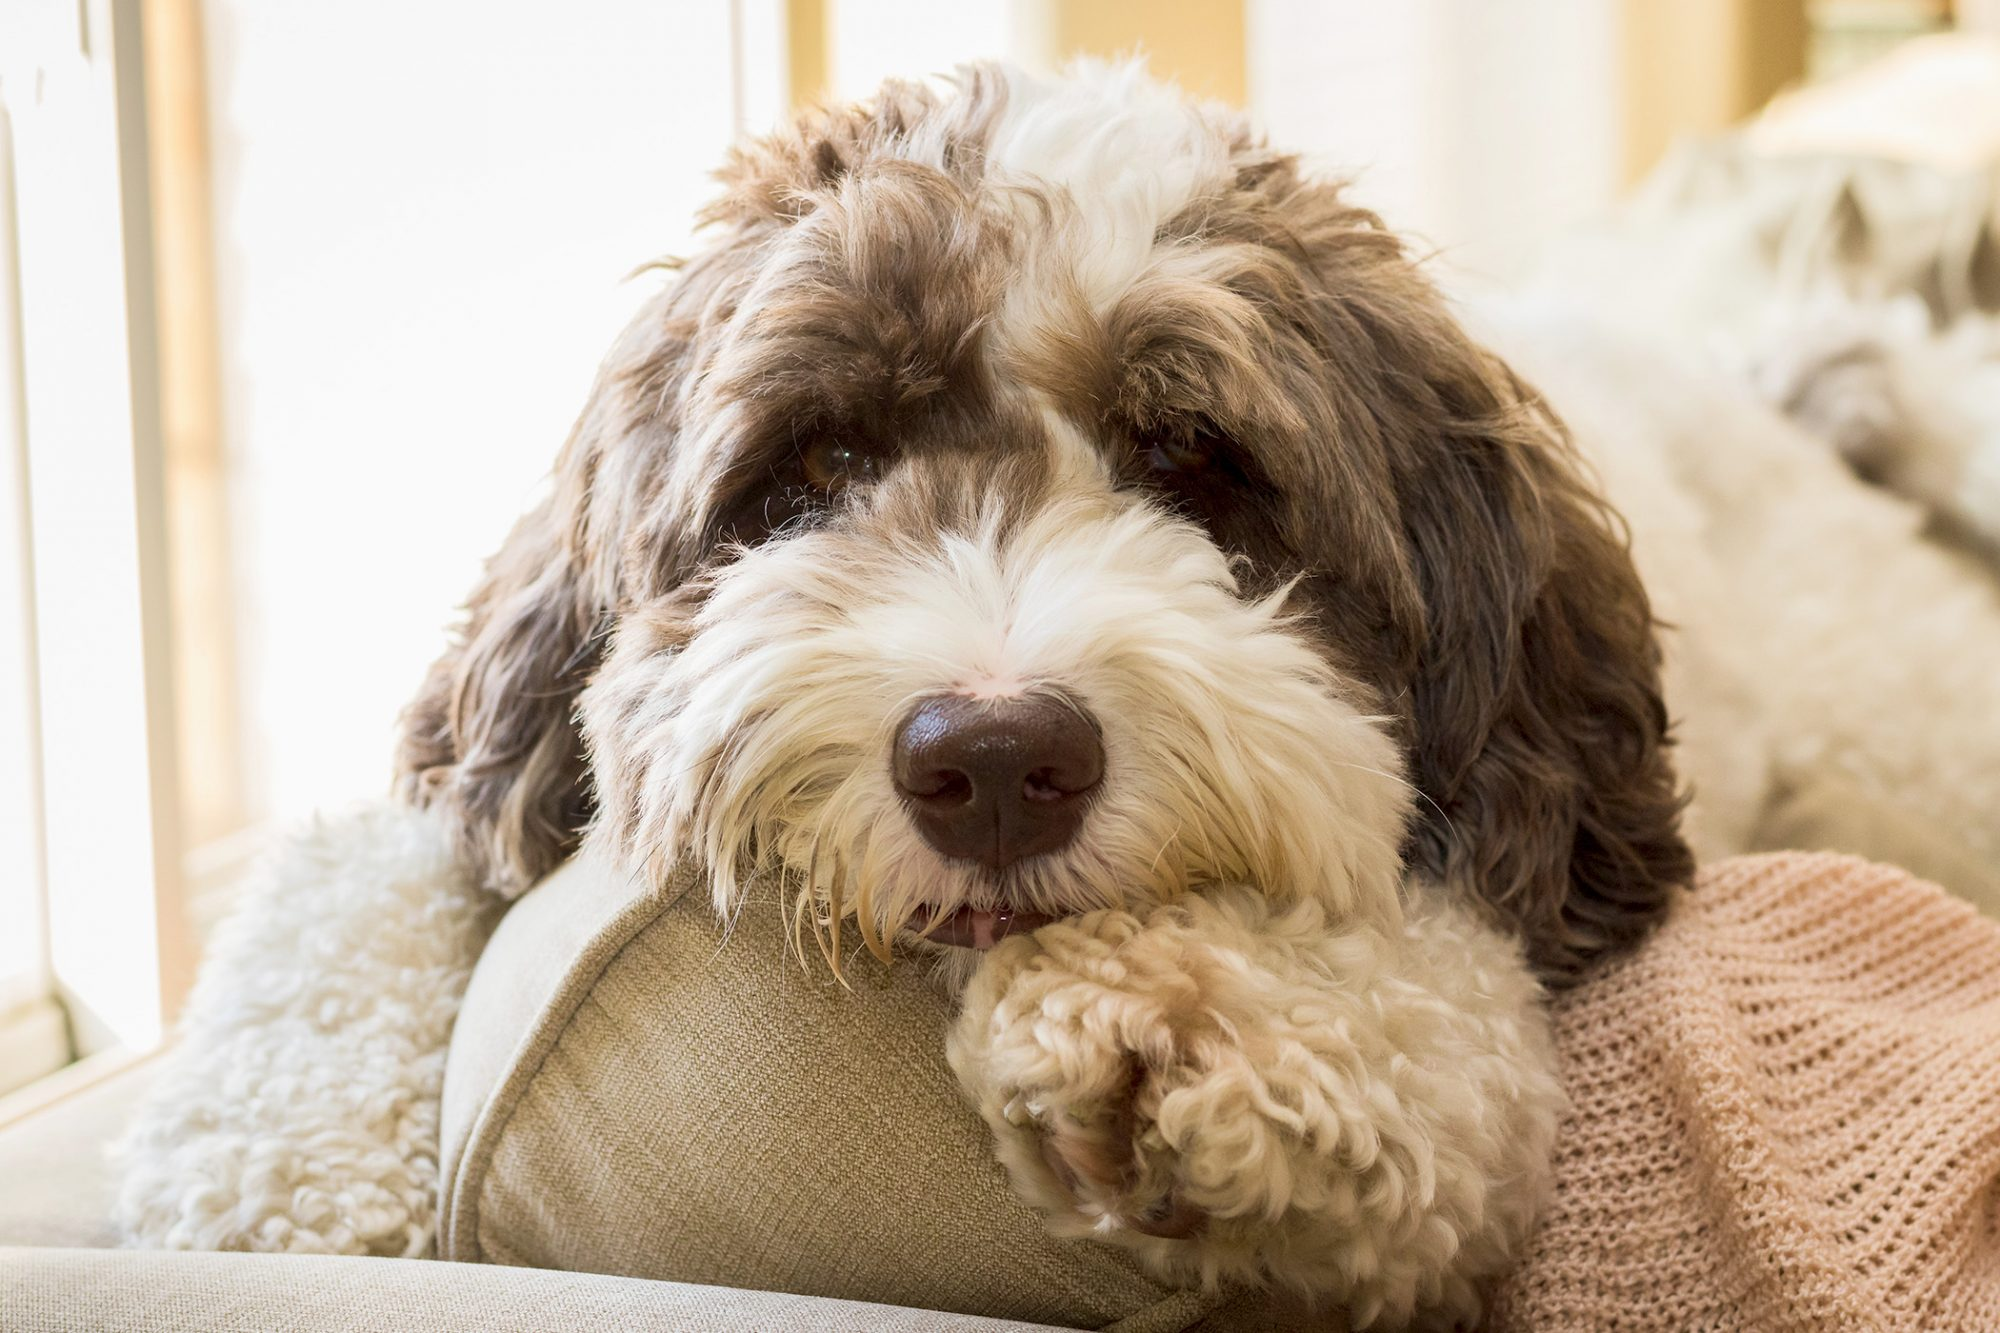 Labradoodles are known to be one of the best hypoallergenic non-shedding dog breeds for people who have asthma or allergies.